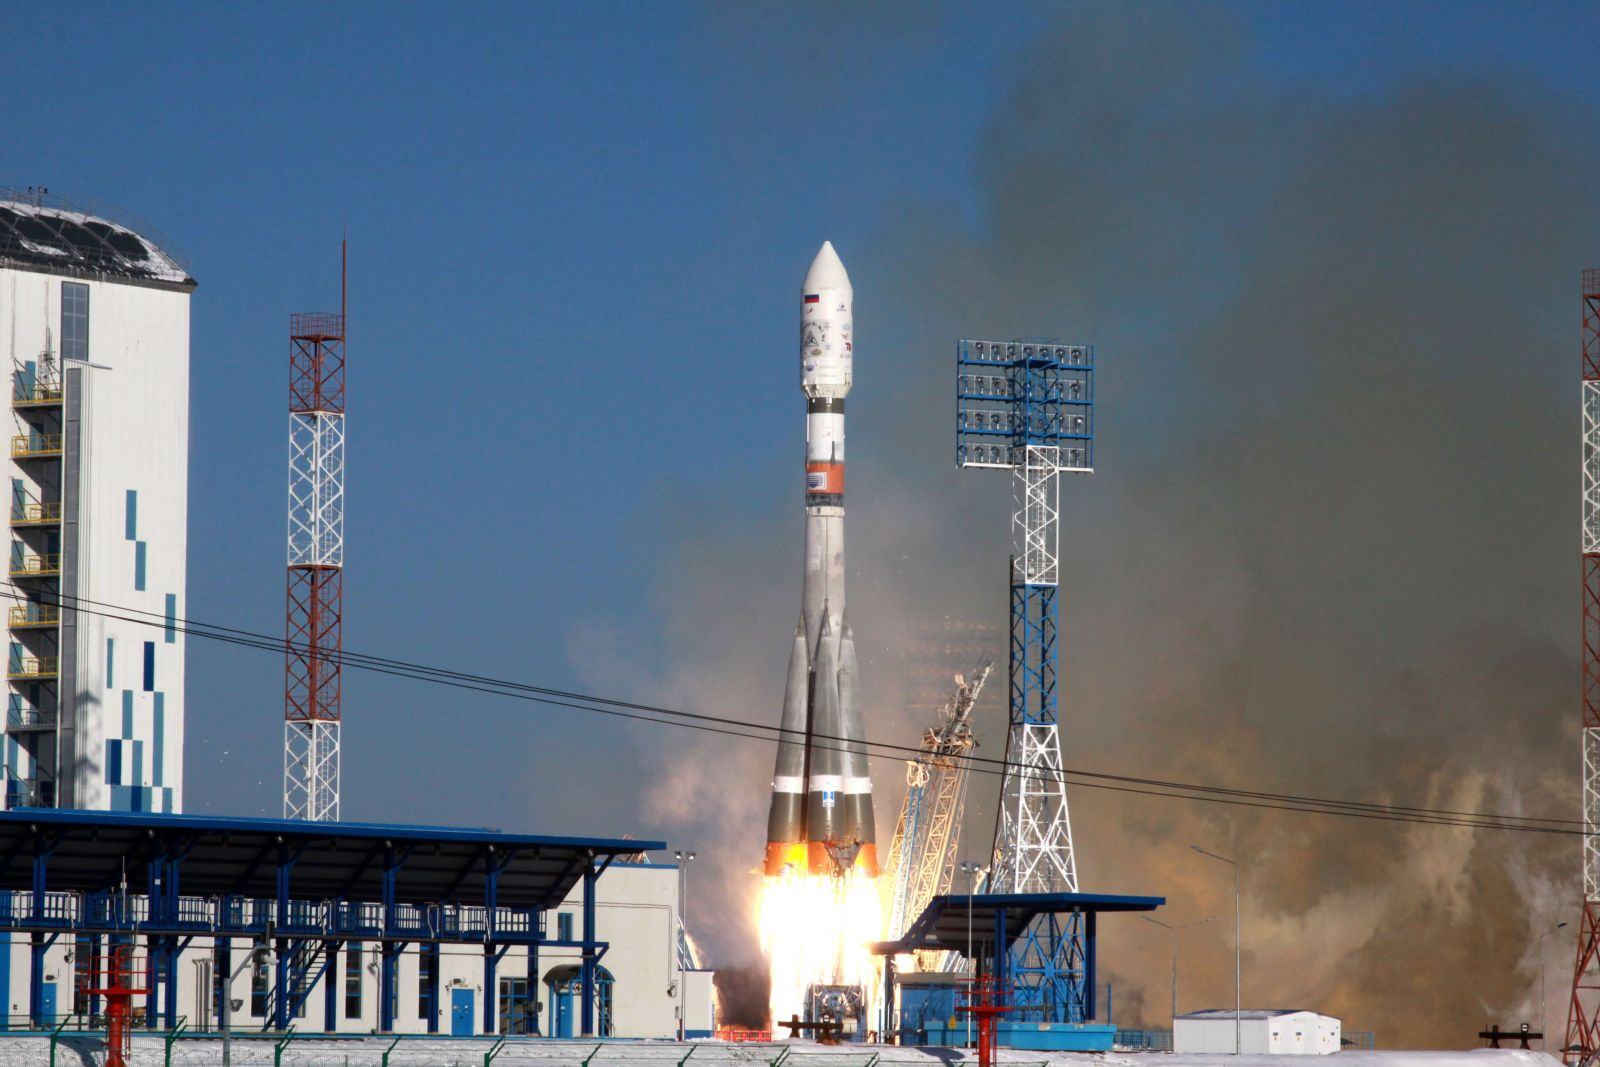 Archive photo of Soyuz 2 launch from the Vostochny Cosmodrone. Photo Credit: Roscosmos